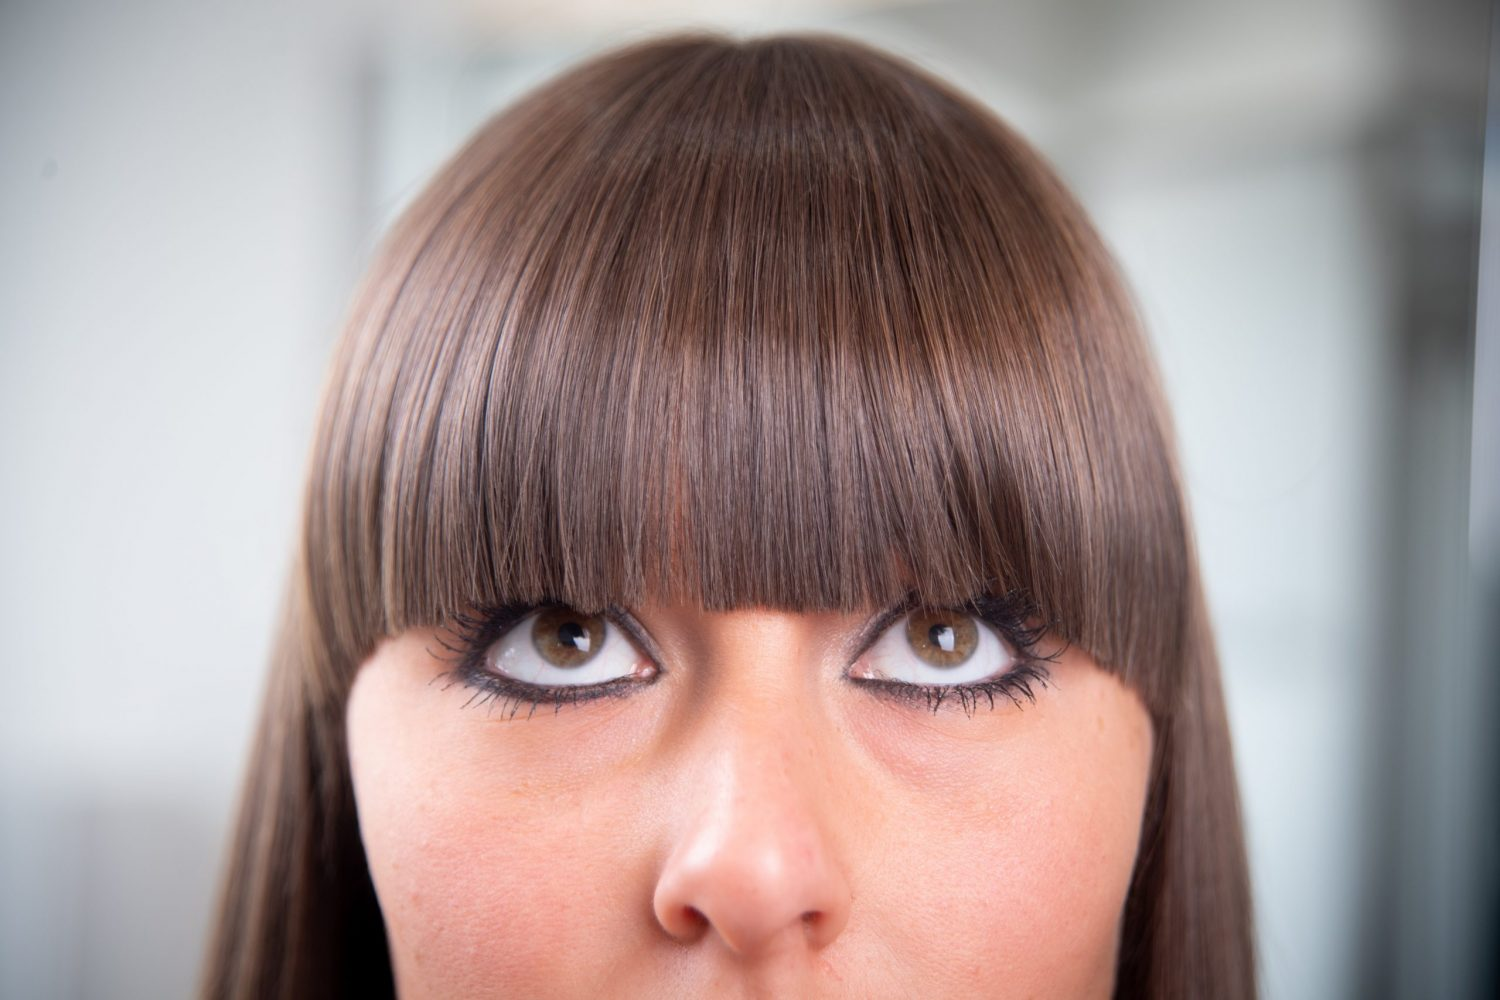 How to trim my own fringe